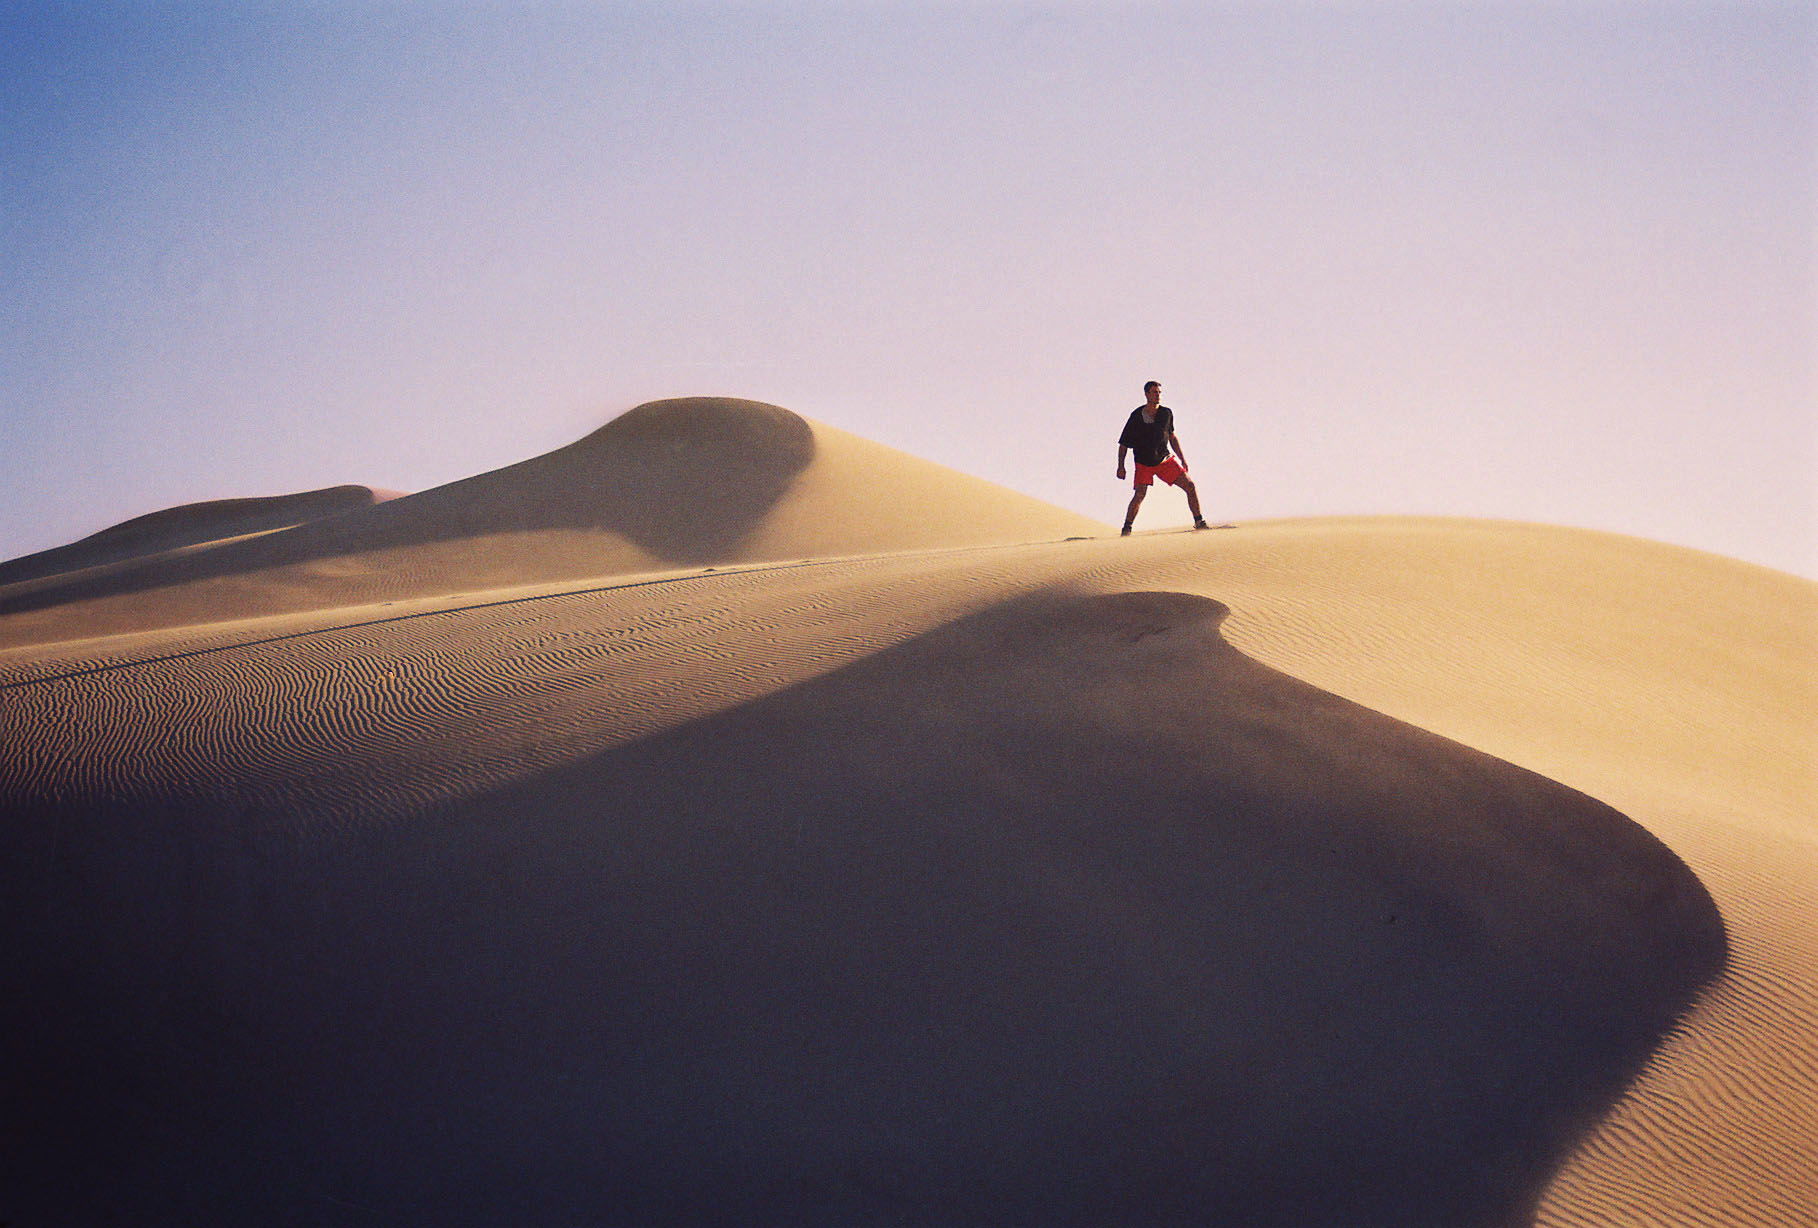 MOROCCO NORD QUEST DUNES 8-R1-012-4A_1.jpg